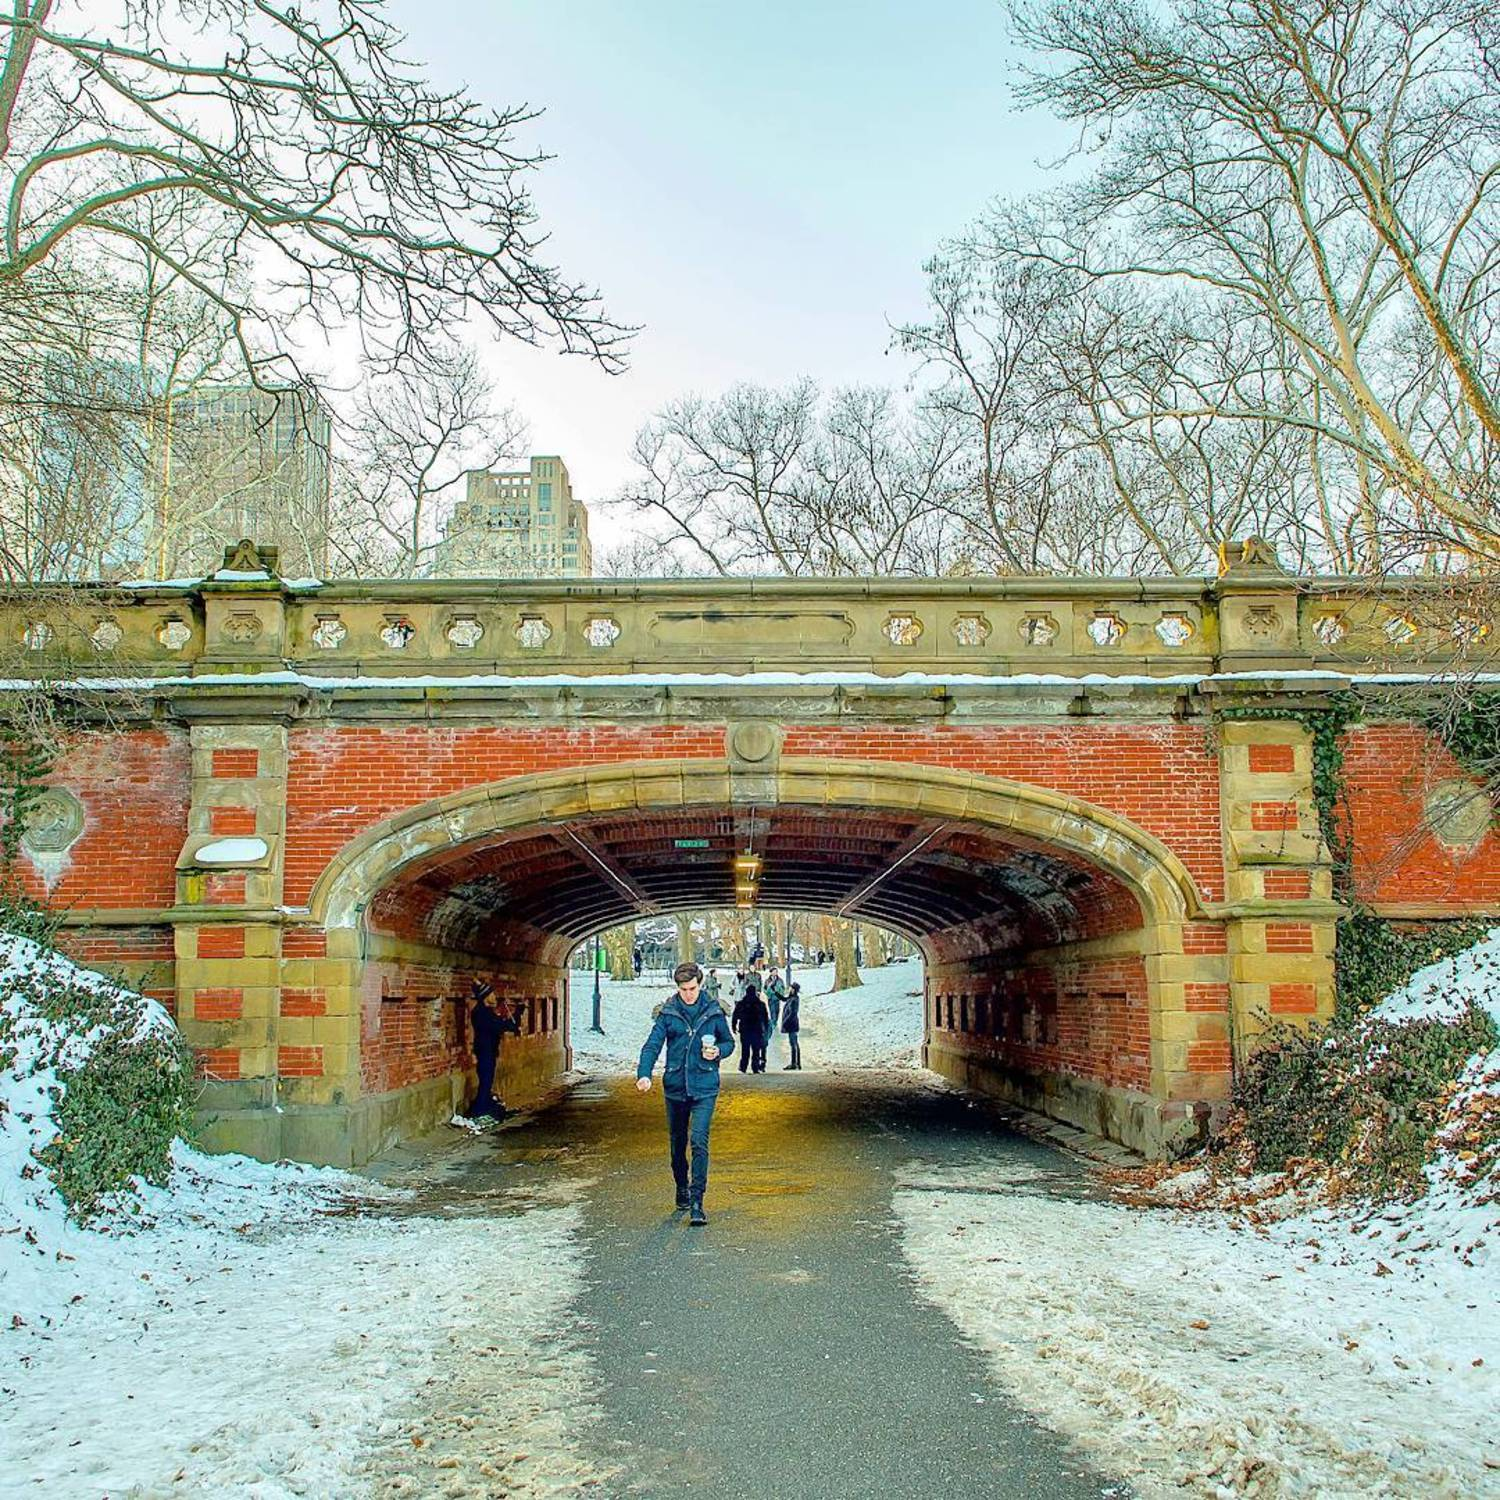 DripRock Arch in Central Park